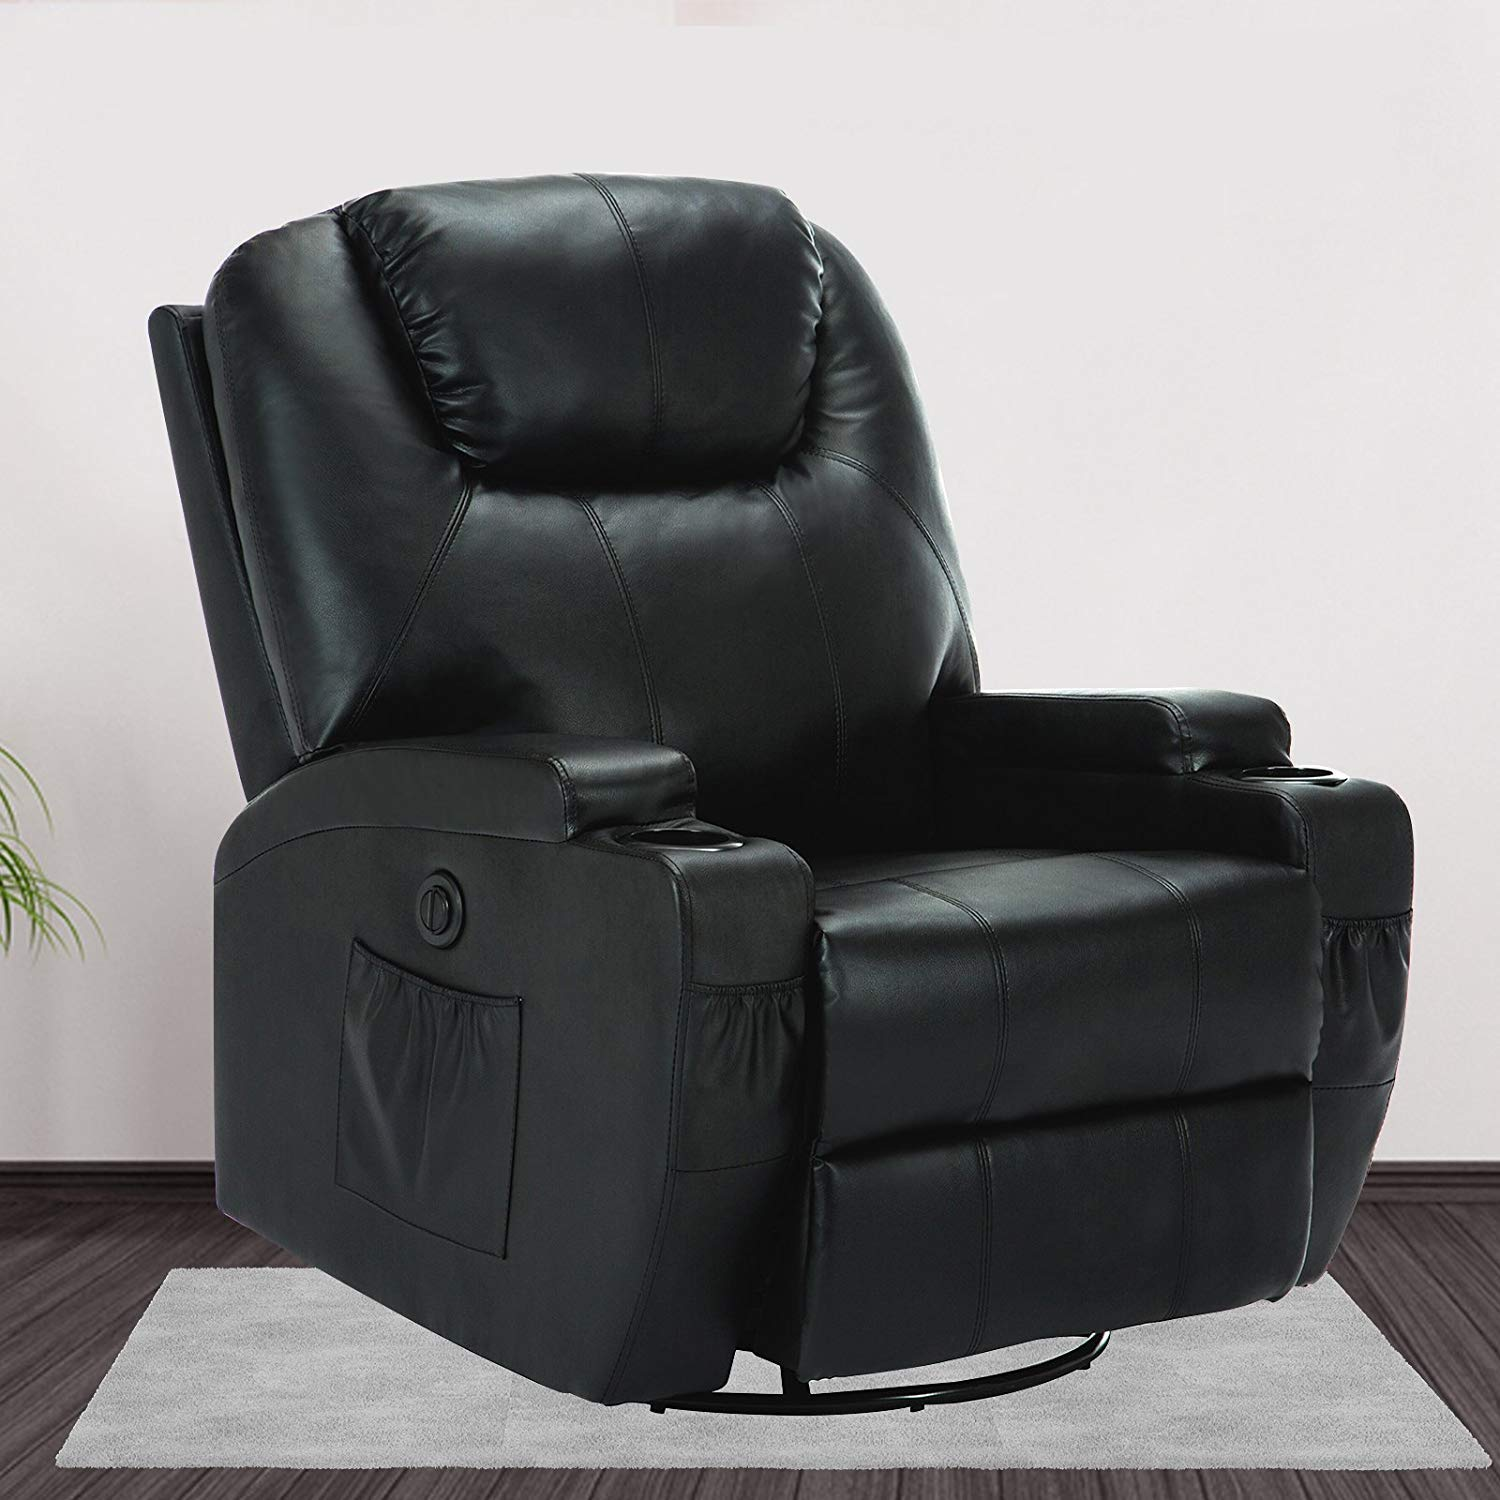 Mecor Electric Massage Recliner Chair